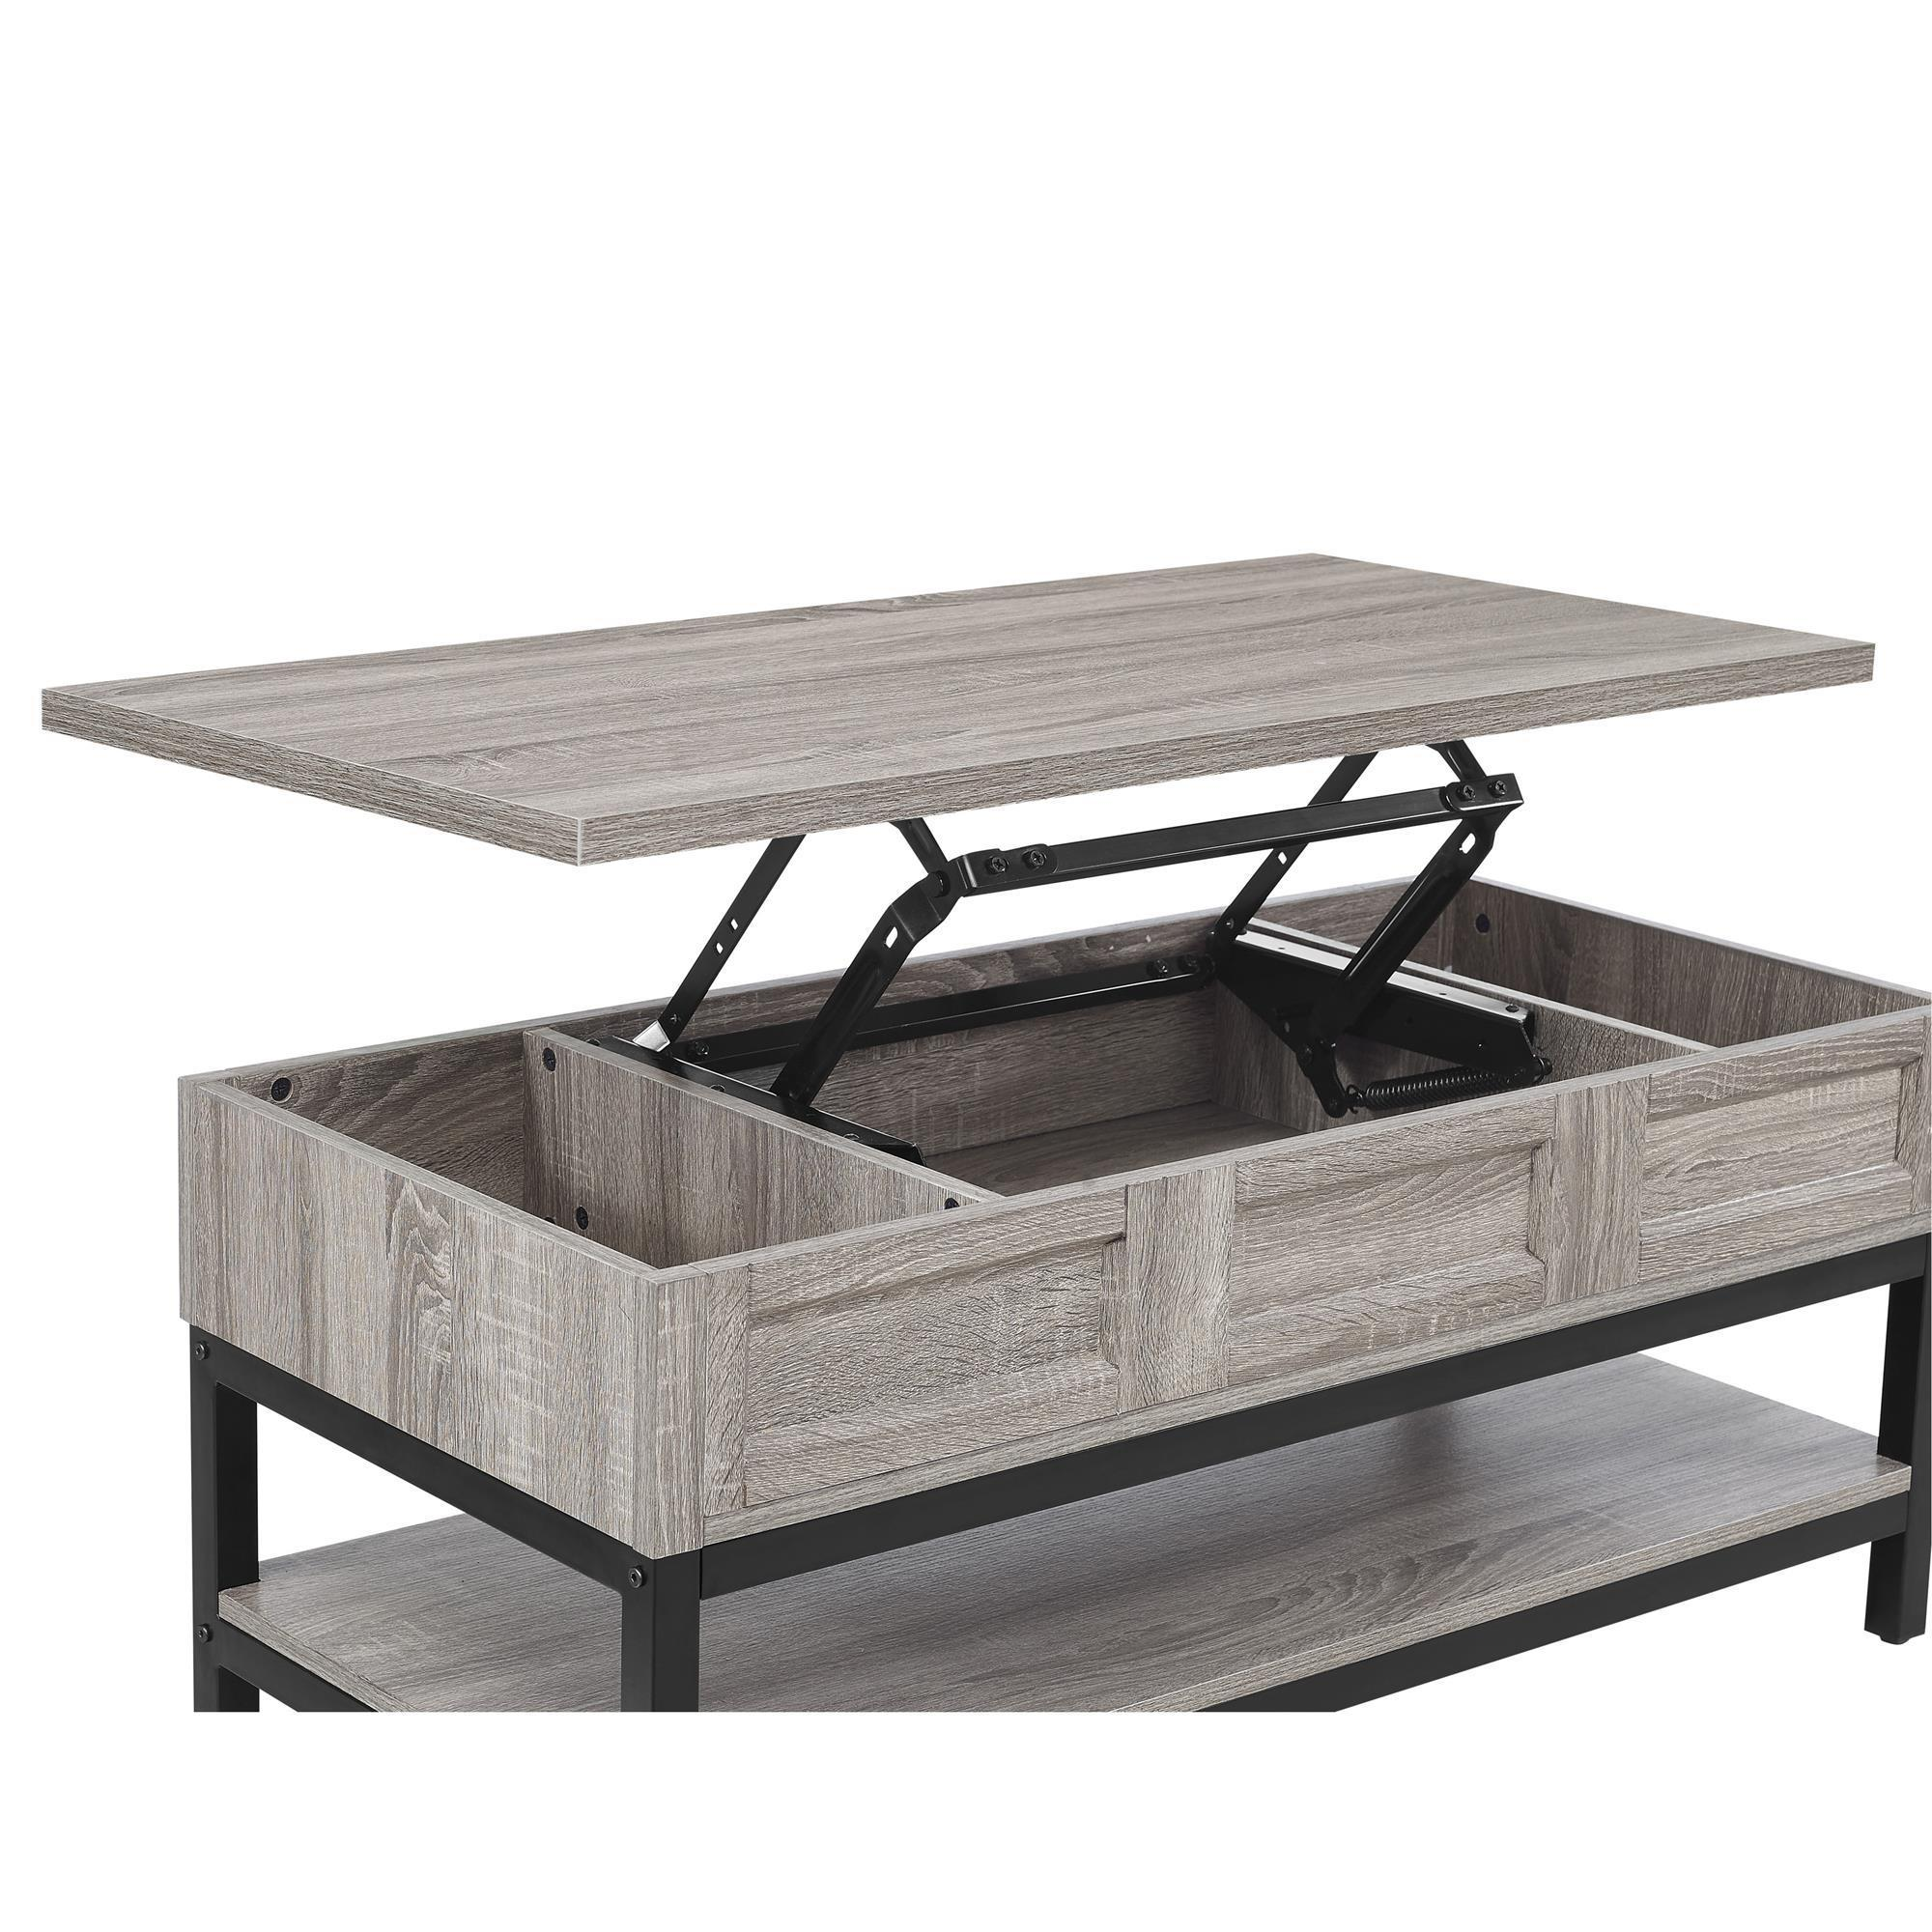 Awesome Ameriwood Home Barrett Modern Farmhouse Lift Top Sonoma Oak Coffee Table    Free Shipping Today   Overstock.com   20561911 Home Design Ideas